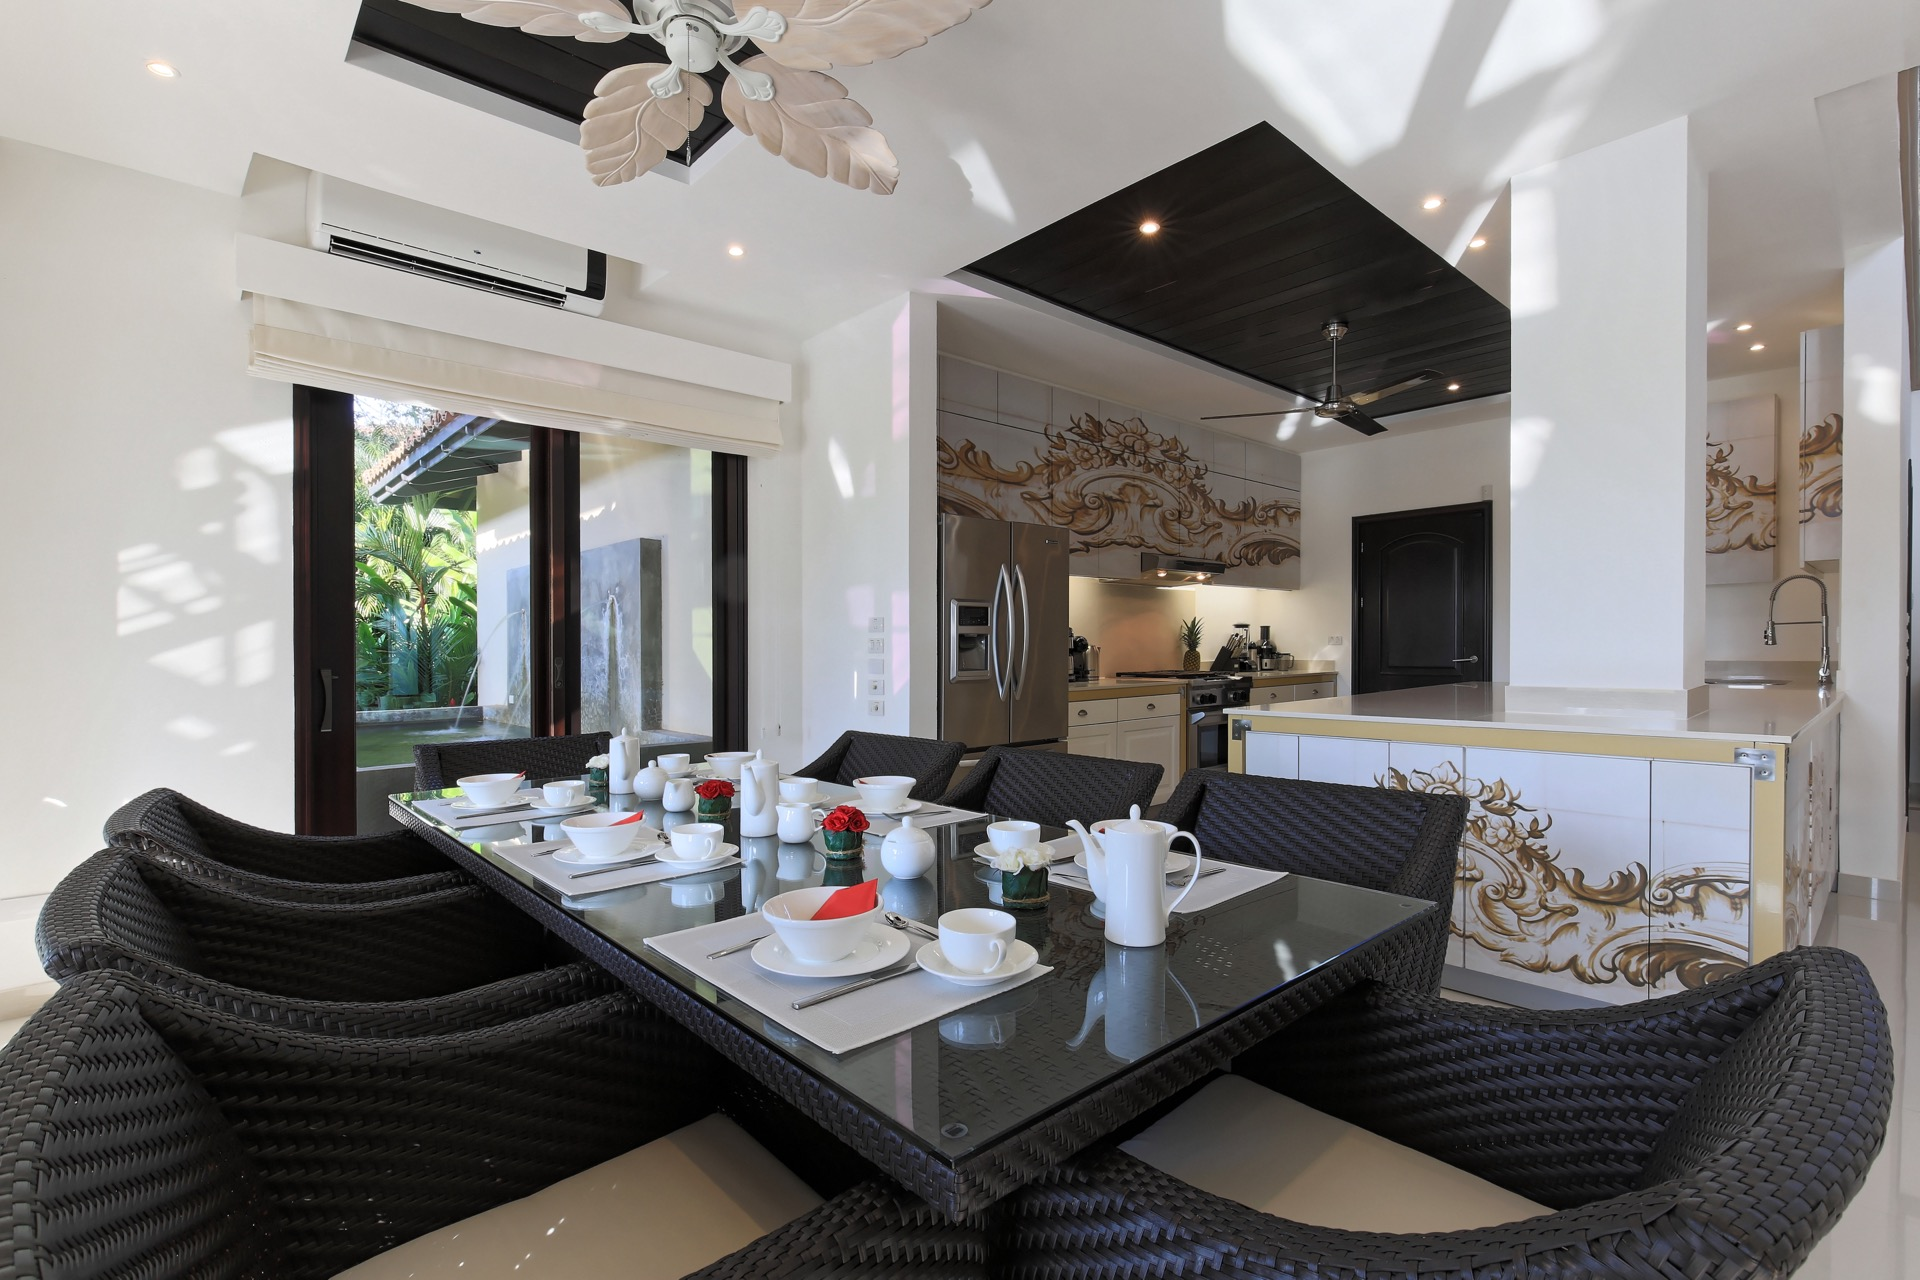 Dining space for the whole family!